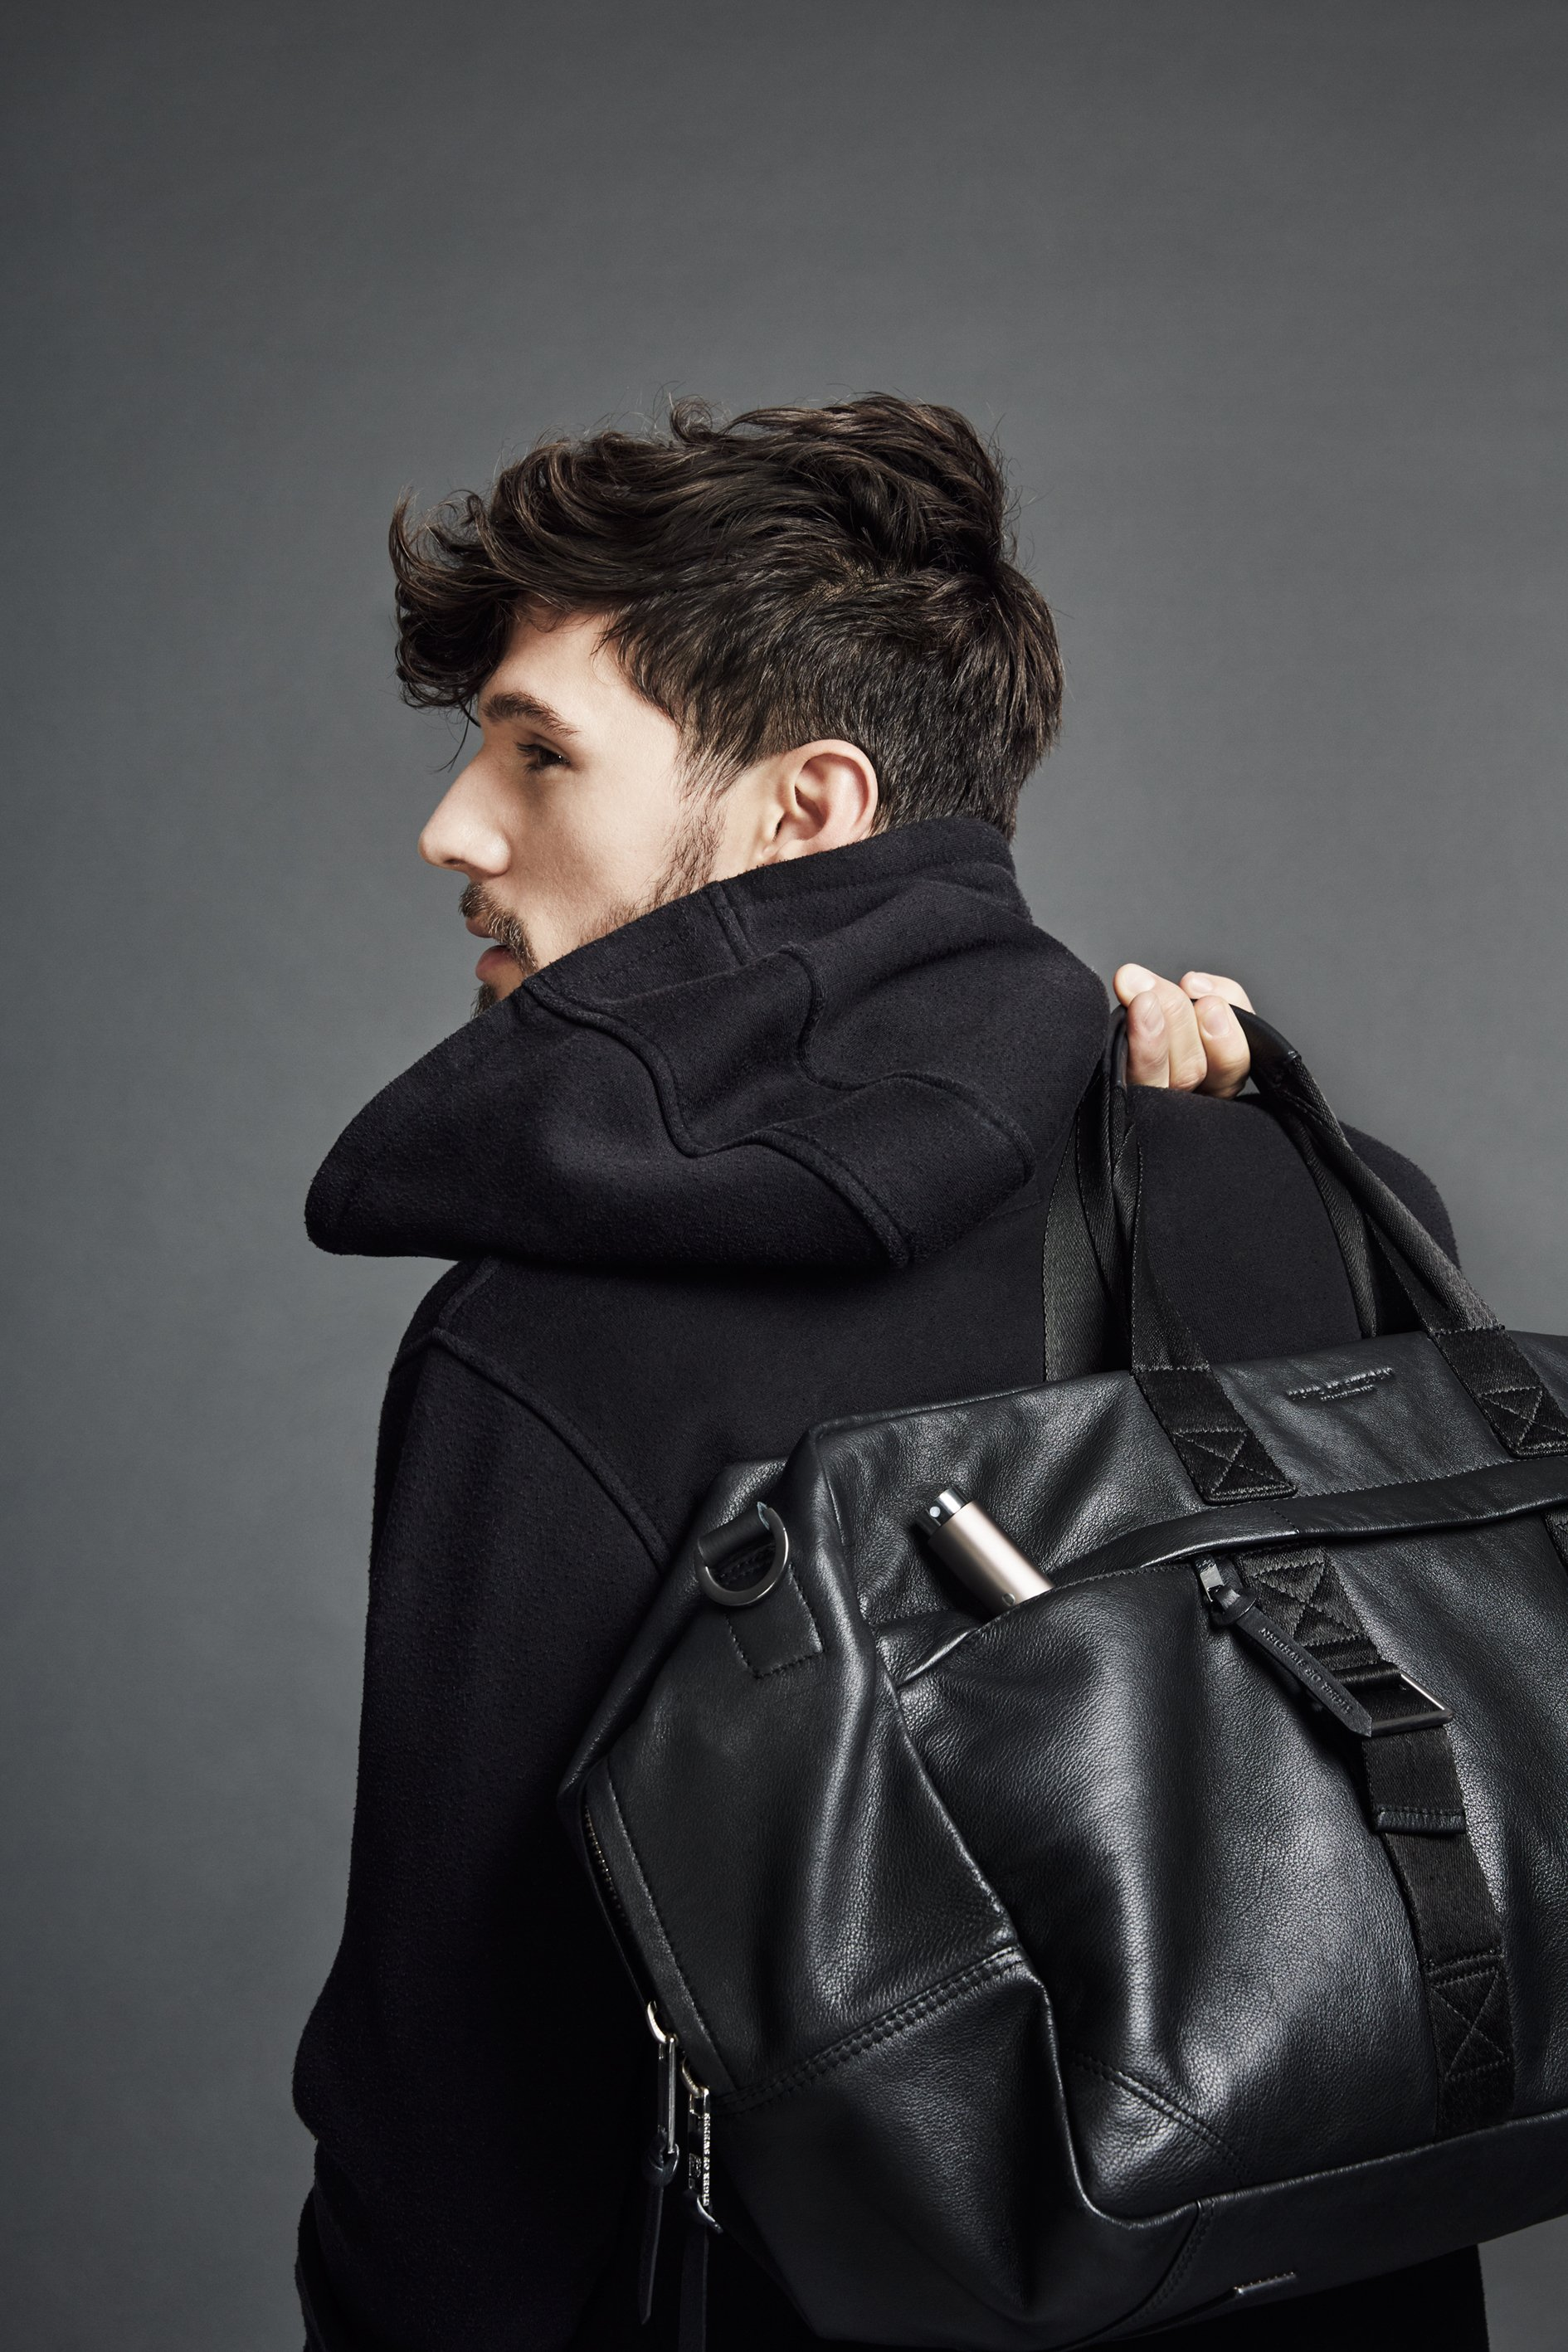 Man with Fragrance in Bag